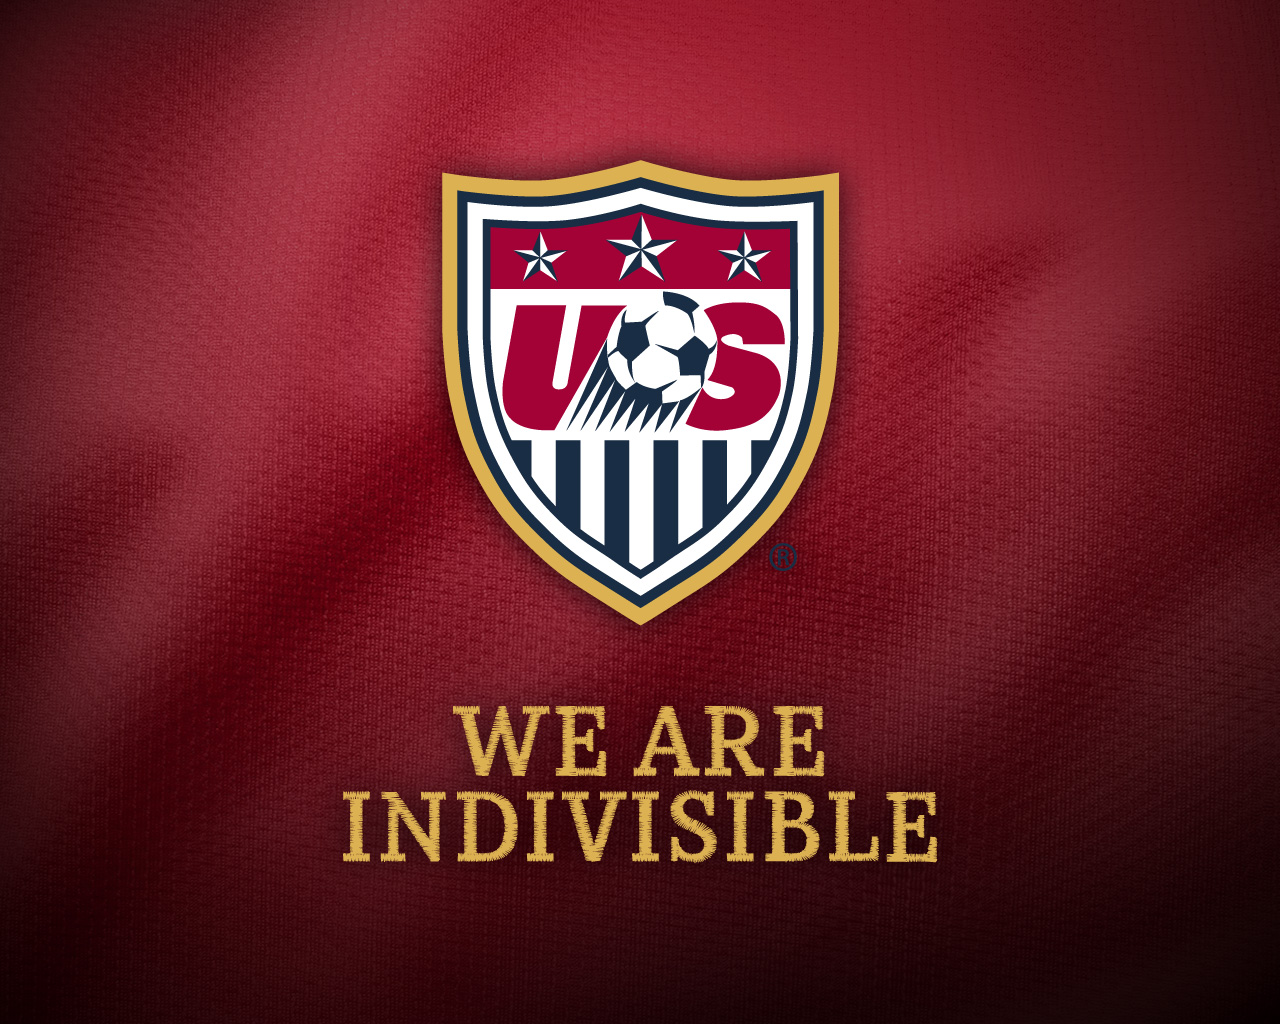 USA Soccer 5688 1280x1024 px ~ HDWallSource.com